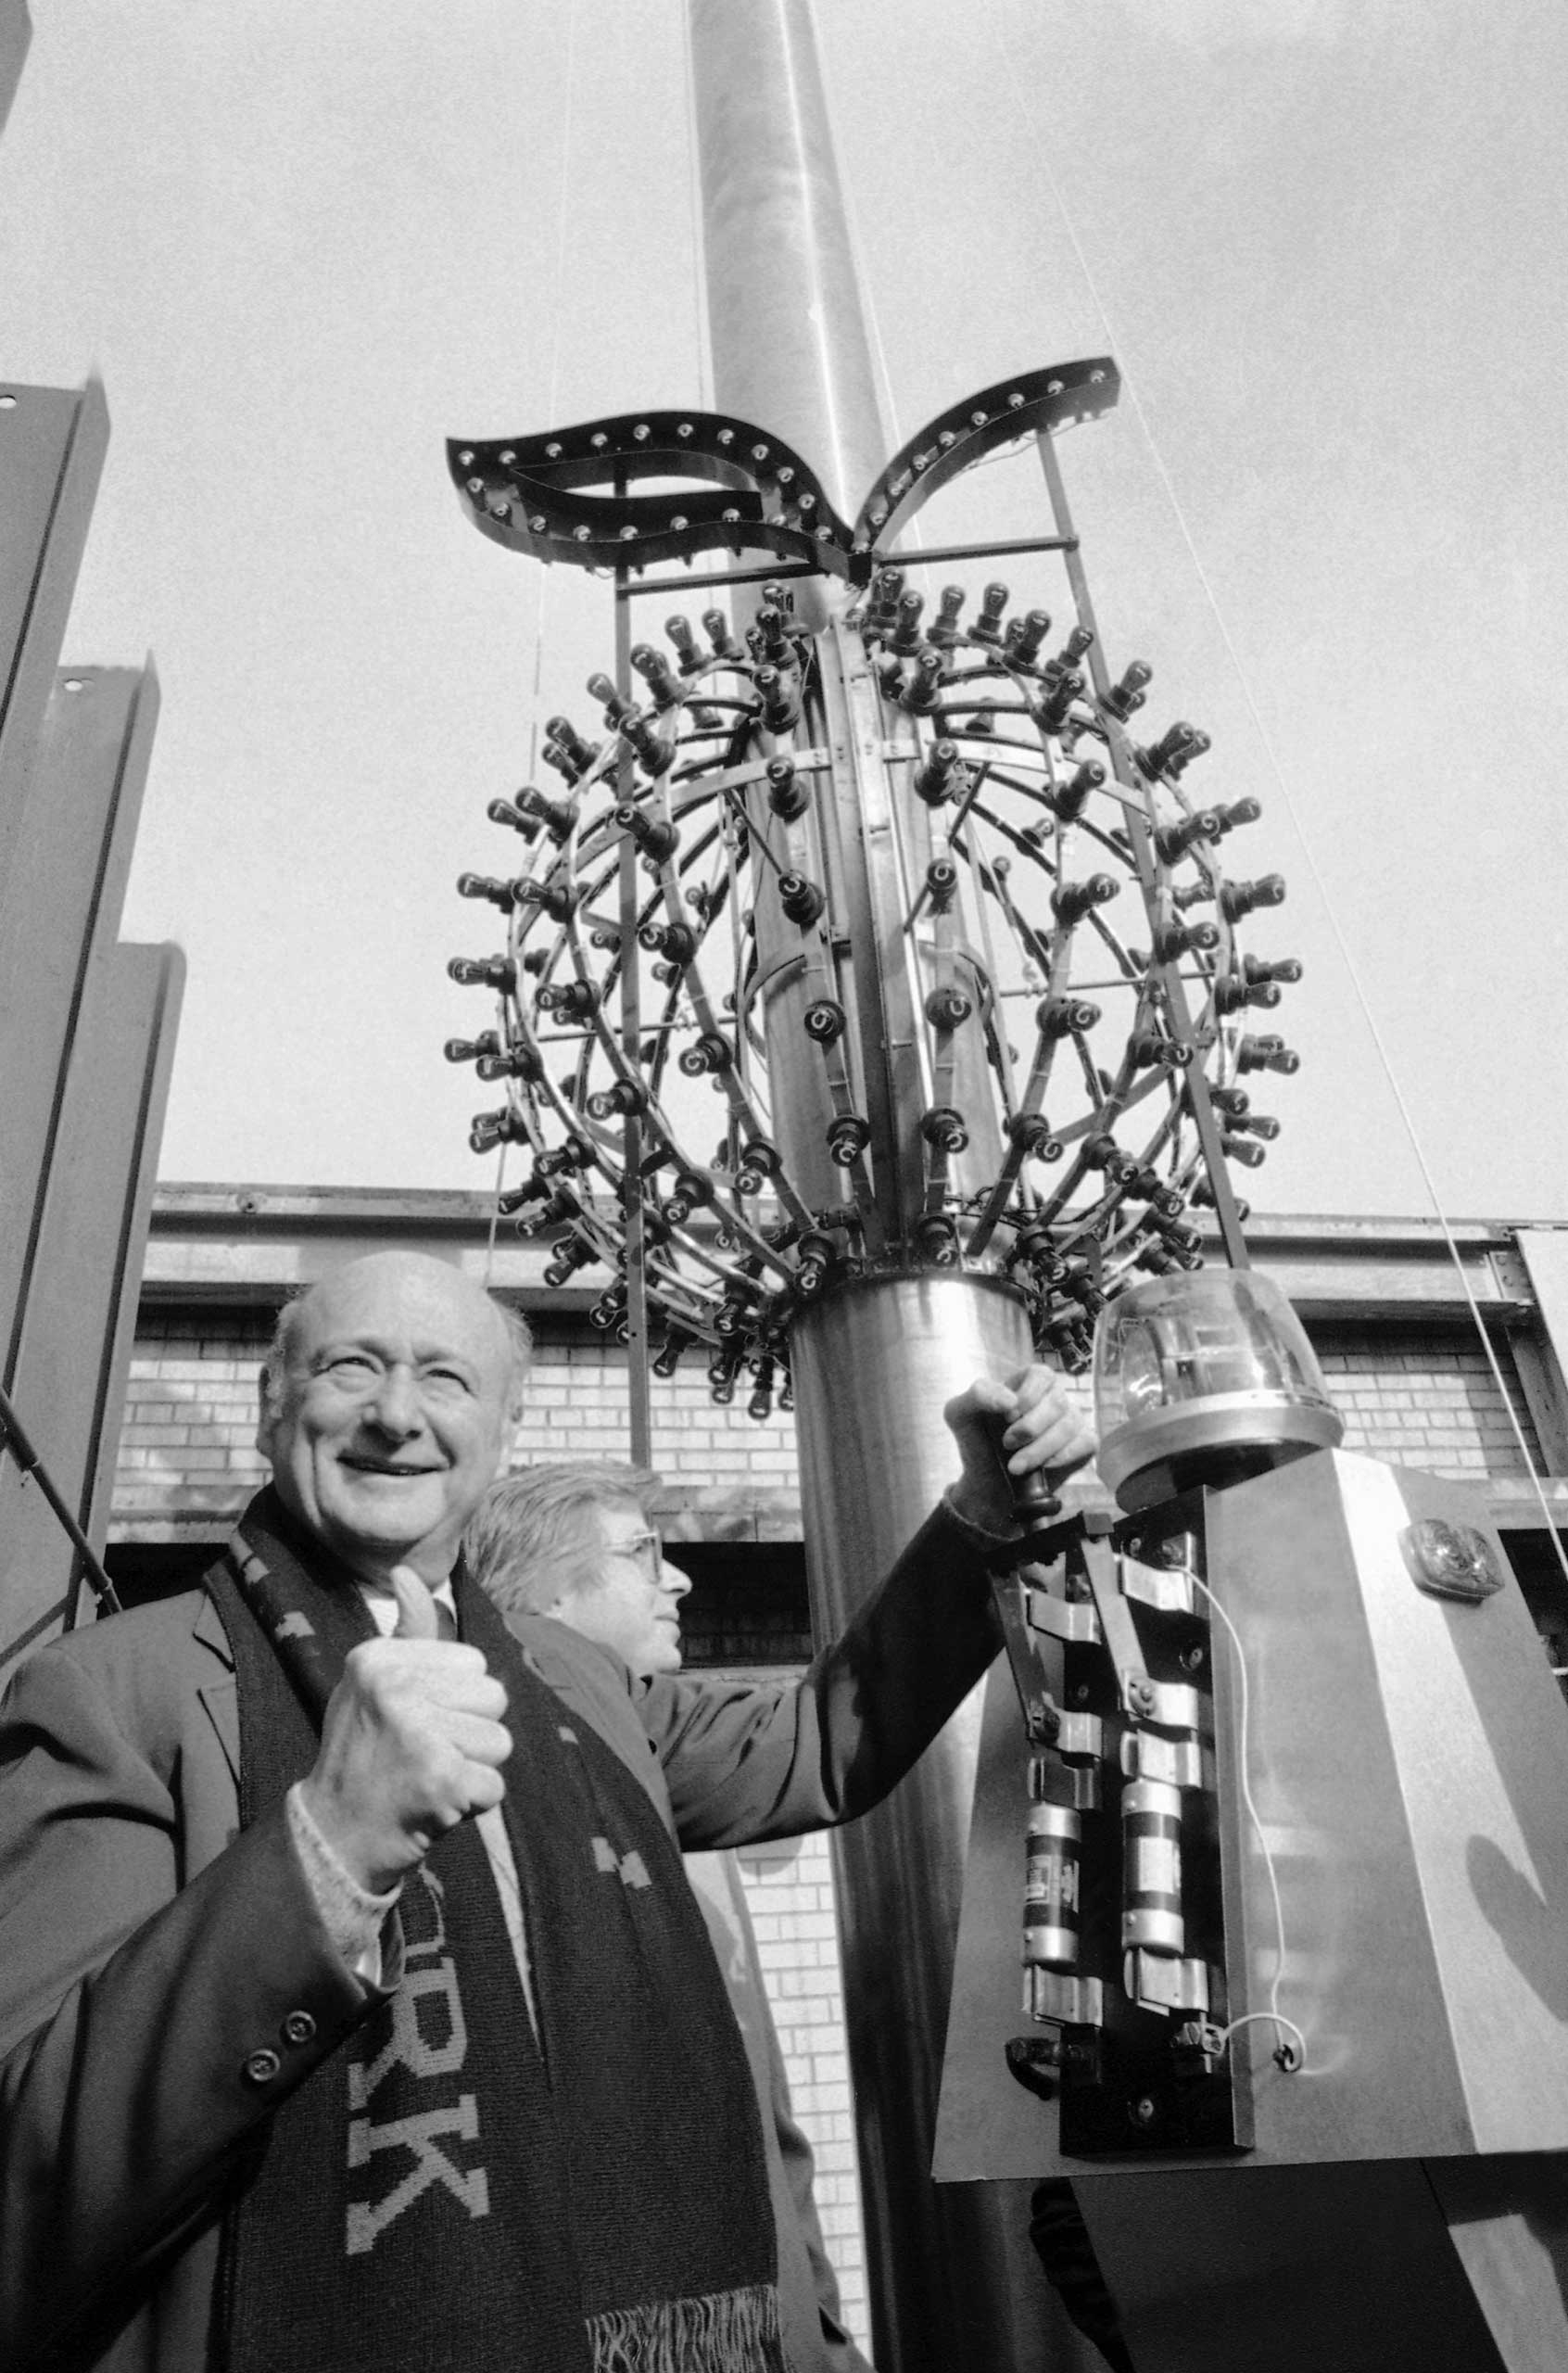 New York City Mayor Ed Koch gives the thumbs up sign as he flips a switch to test the Big Apple Ball on Dec. 24, 1981 in New York City.